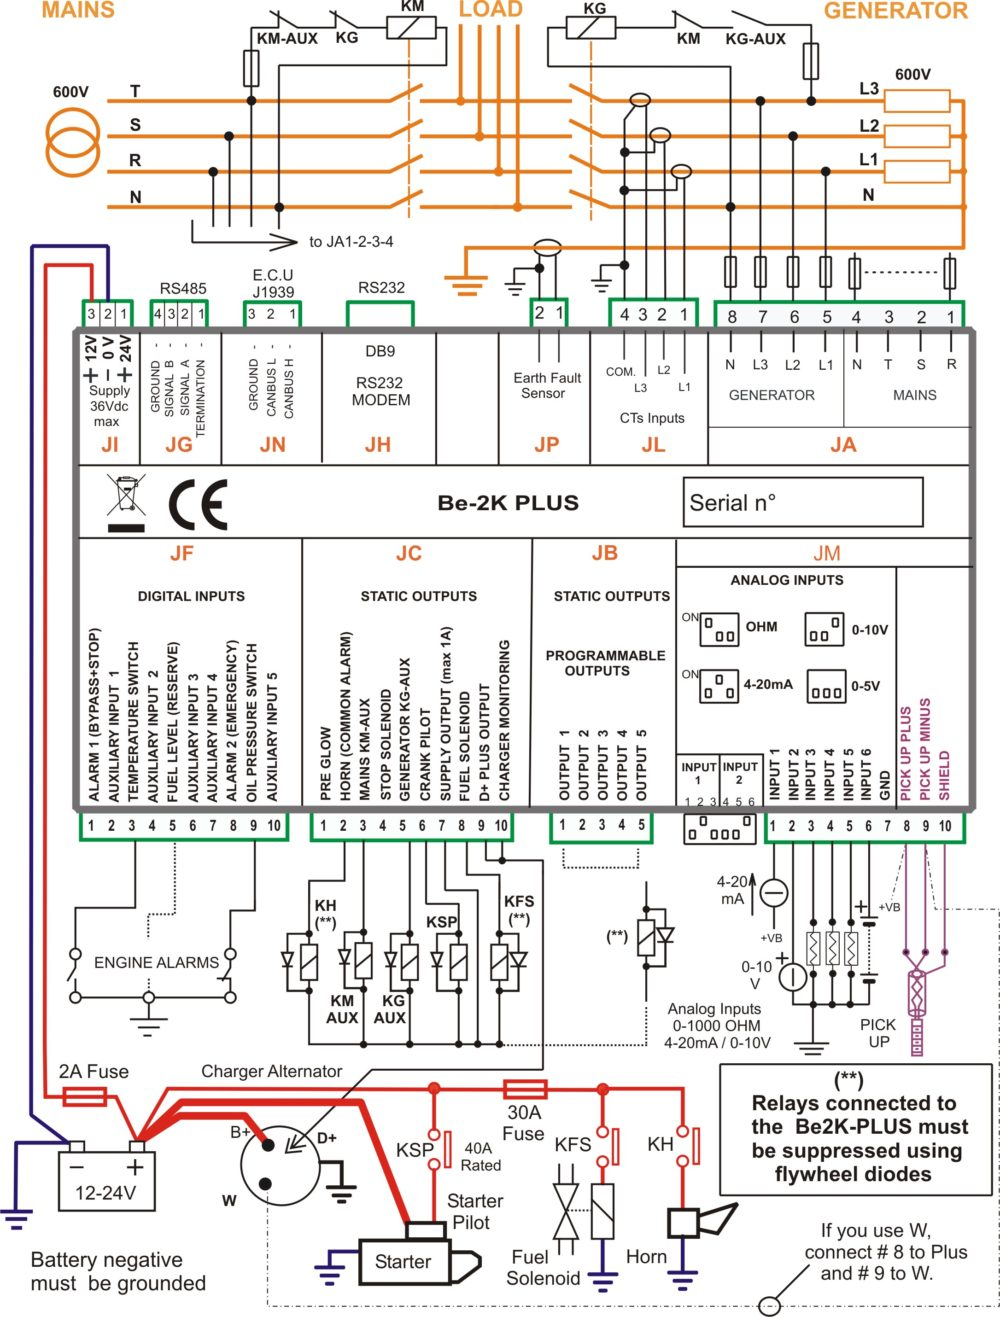 medium resolution of automatic changeover switch for generator circuit diagram